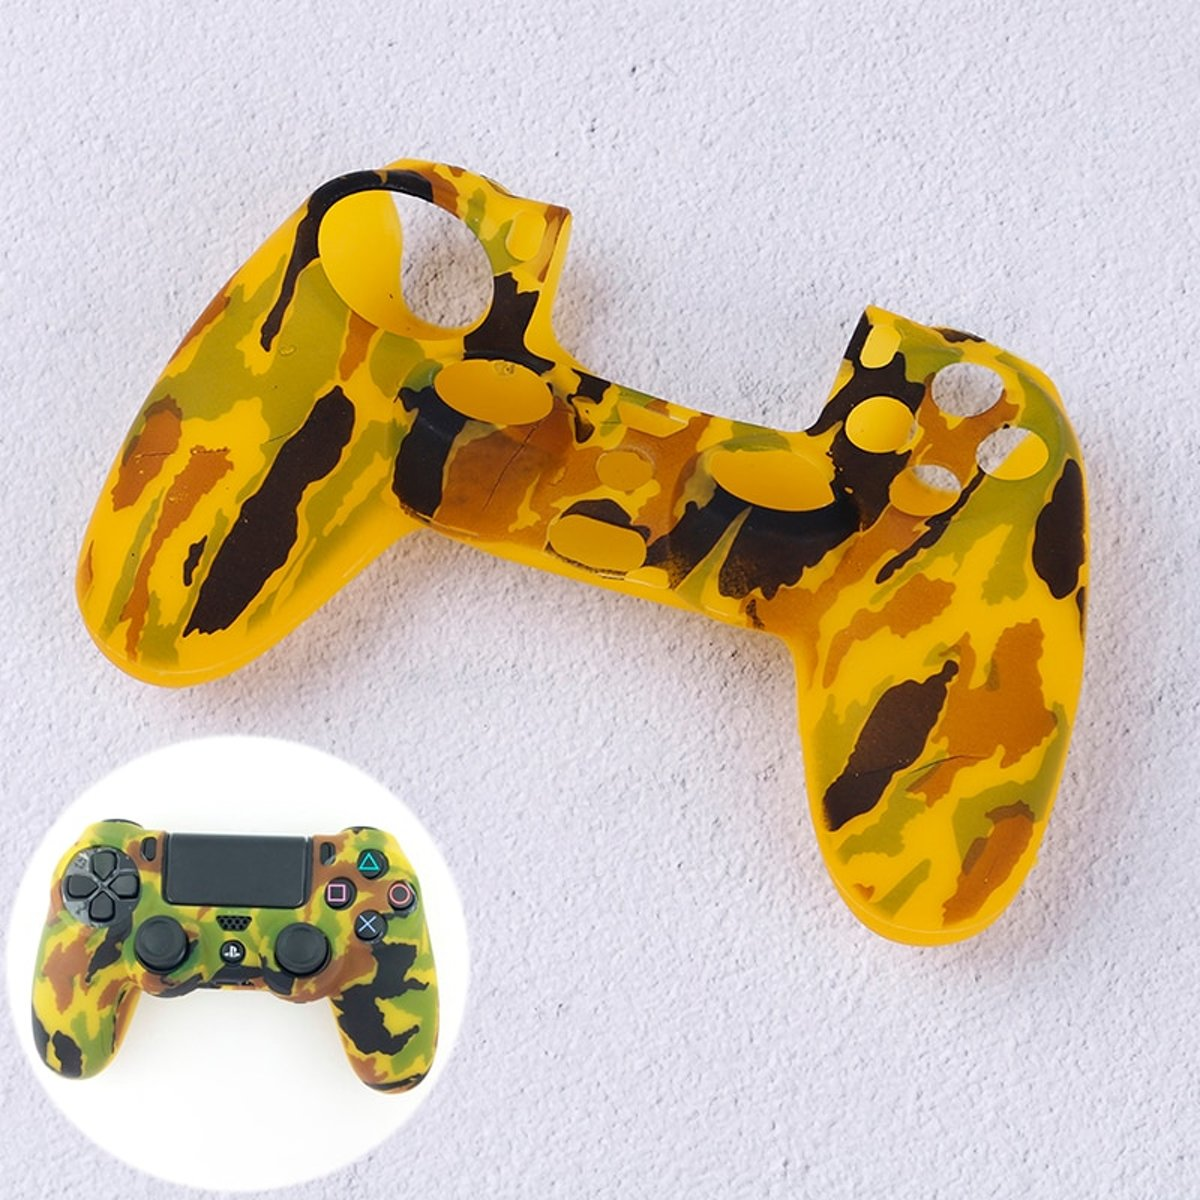 PS4   Protector Siliconen - Camouflage Army Geel -